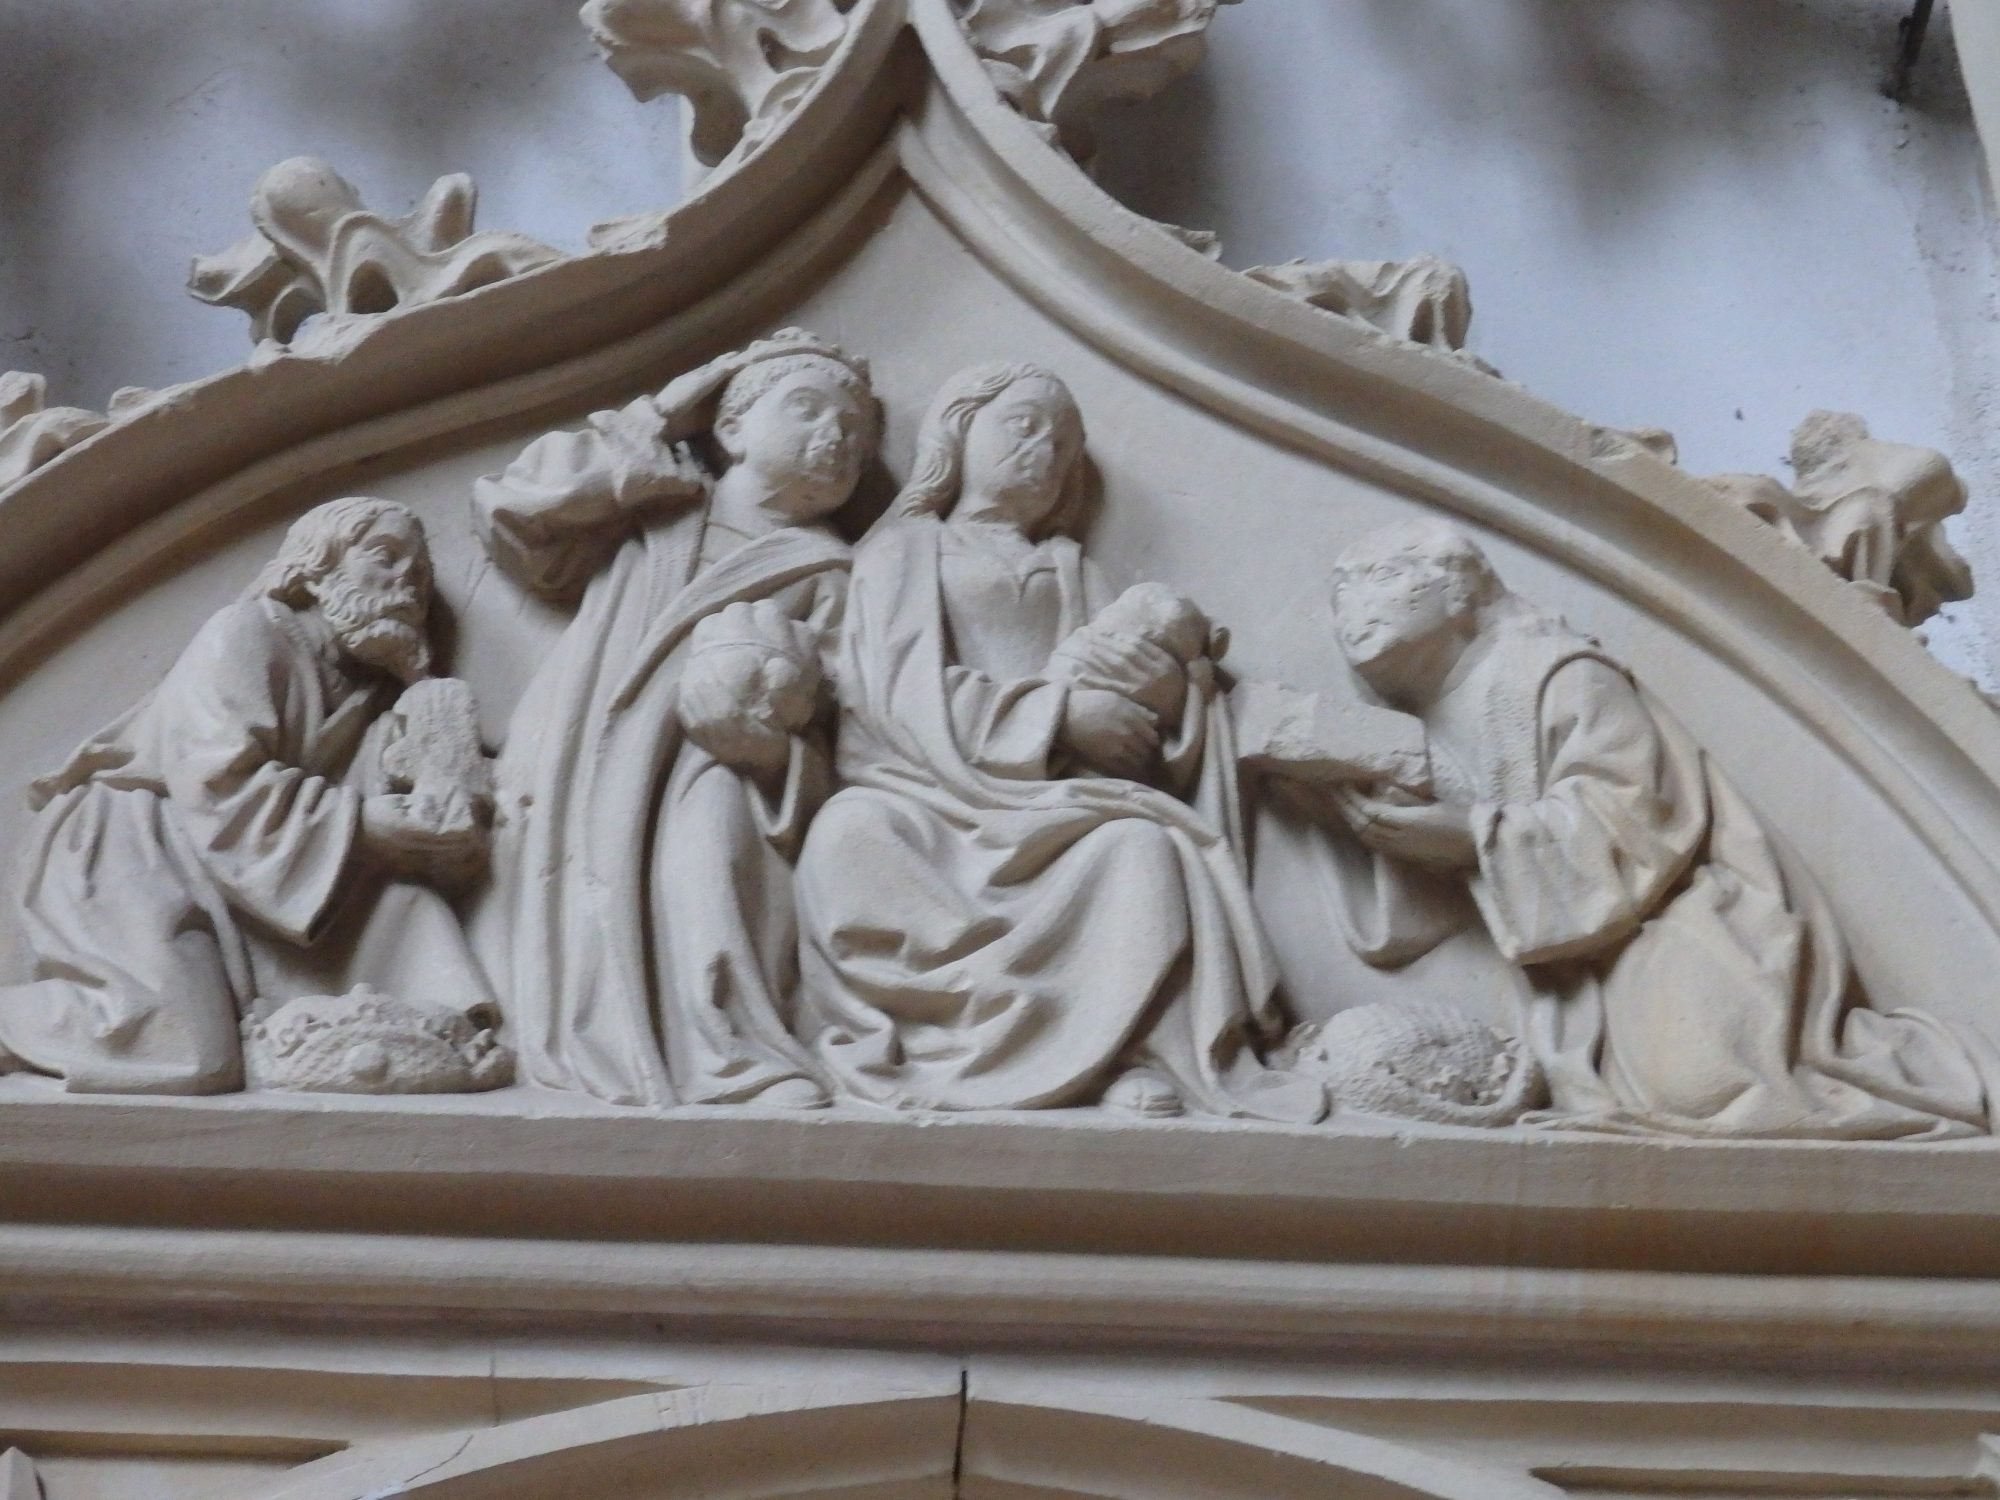 In this image of the adoration of the Magi, the head of the infant Jesus was cut off in the Reformation. Ter Apel, the Netherlands